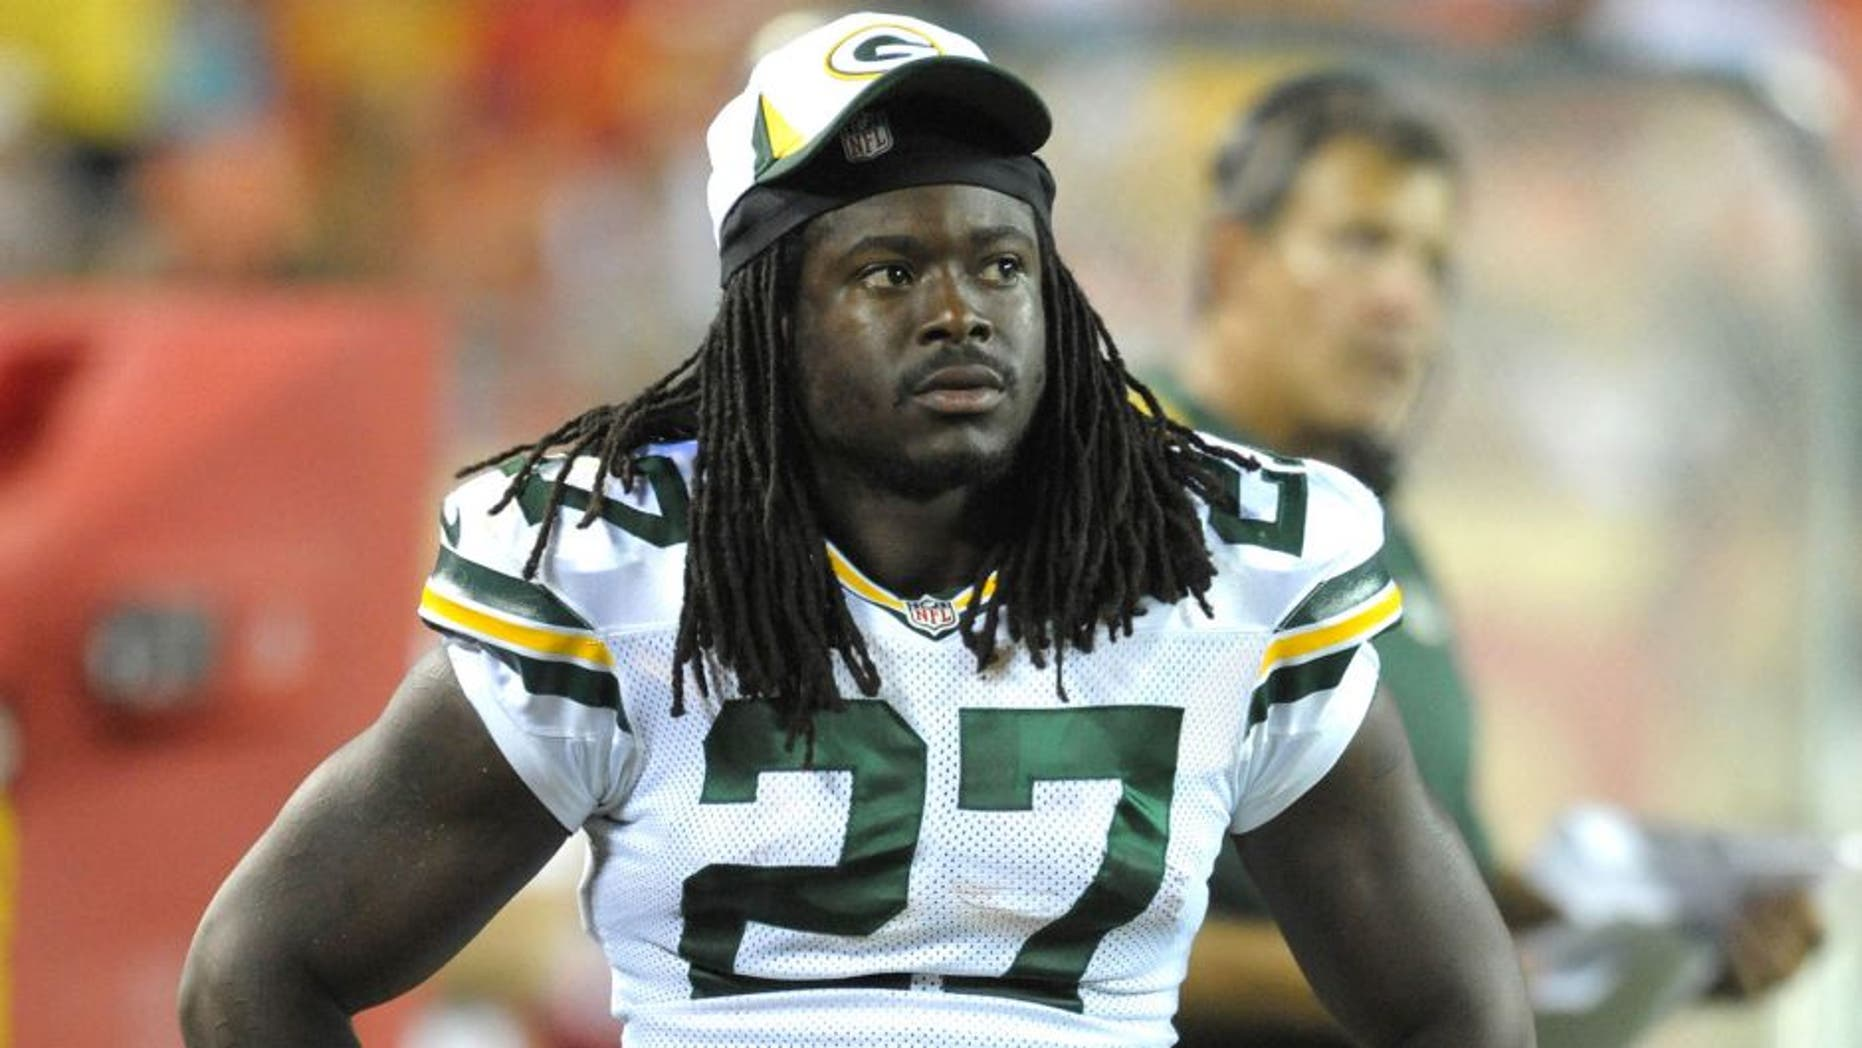 Aug 29, 2013; Kansas City, MO, USA; Green Bay Packers running back Eddie Lacy (27) watches play on the sidelines during the second half of the game against the Kansas City Chiefs at Arrowhead Stadium. The Chiefs won 30-8. Mandatory Credit: Denny Medley-USA TODAY Sports